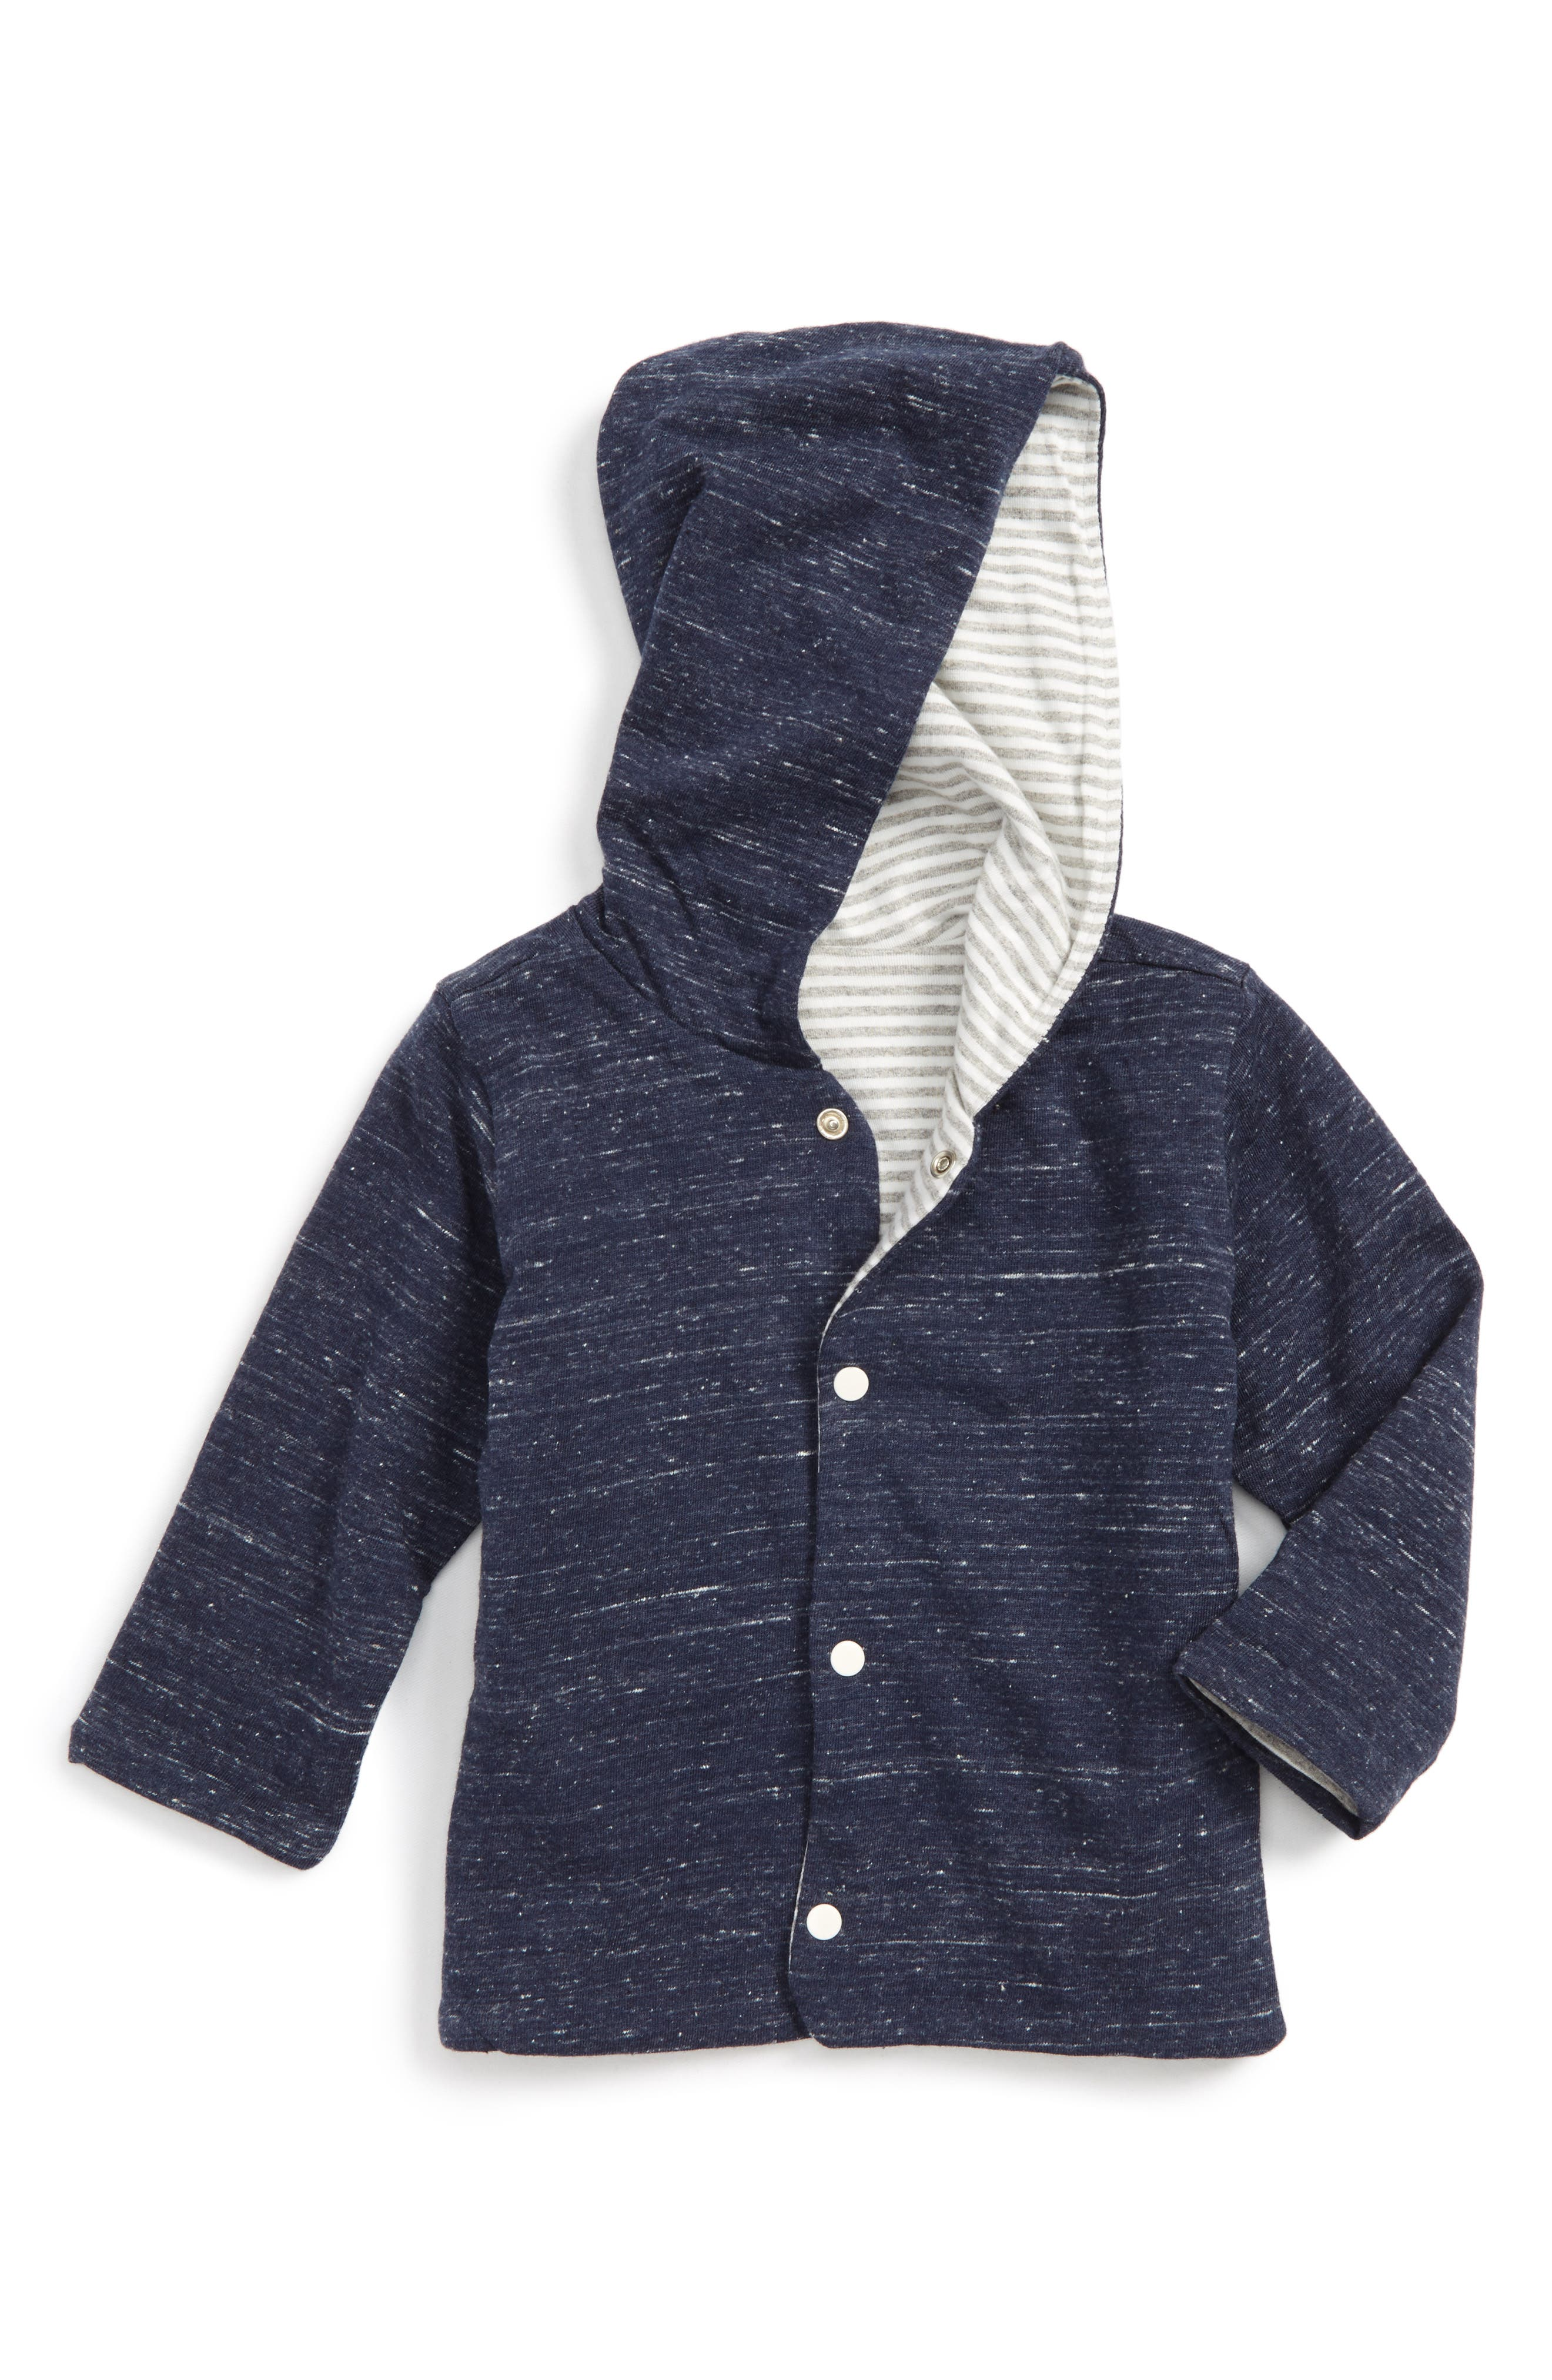 Alternate Image 1 Selected - Hatley Reversible Hoodie (Baby Boys)